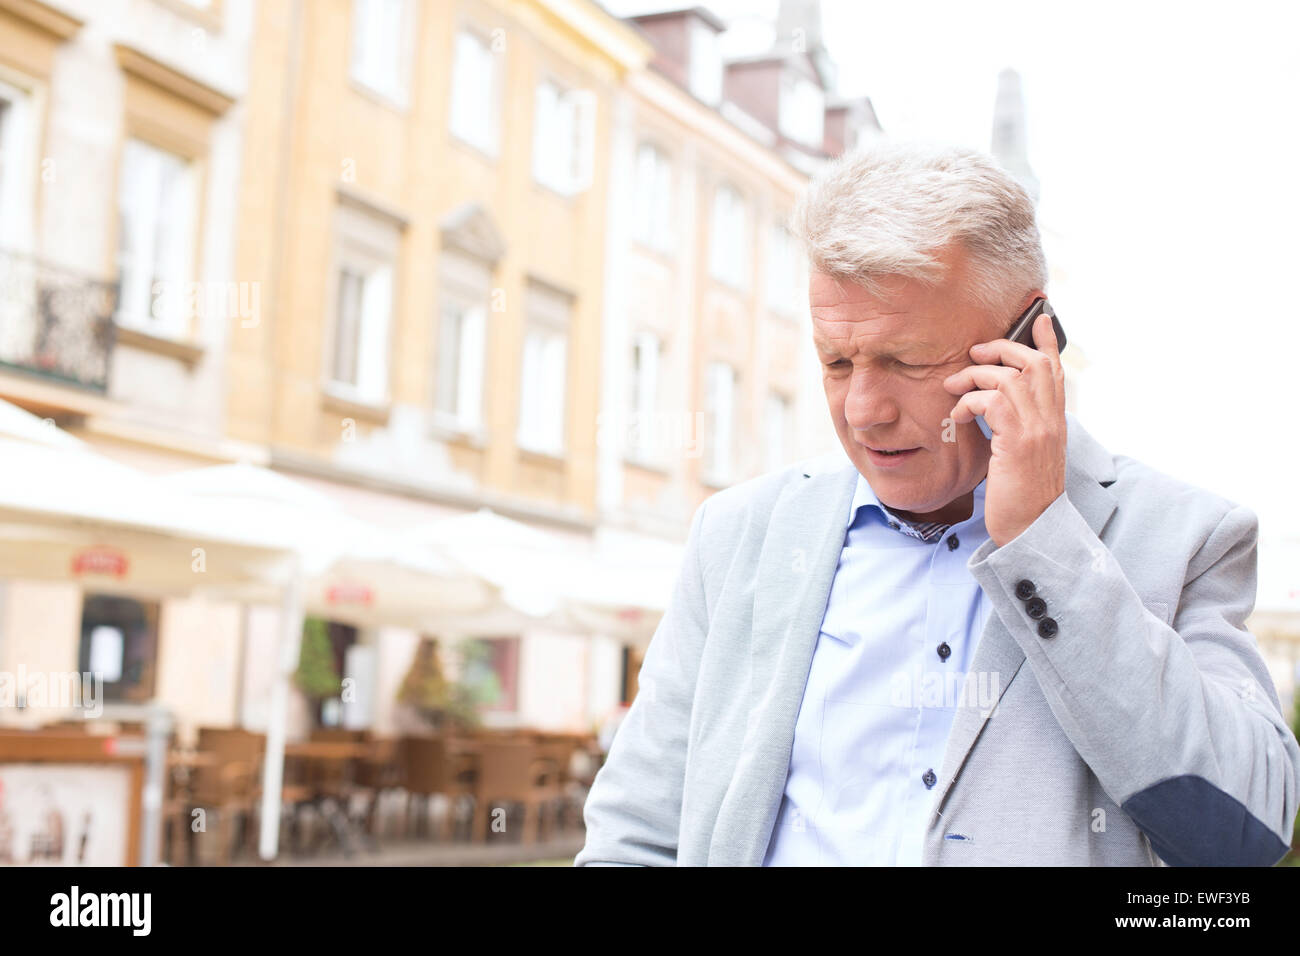 Middle-aged man using mobile phone in city - Stock Image